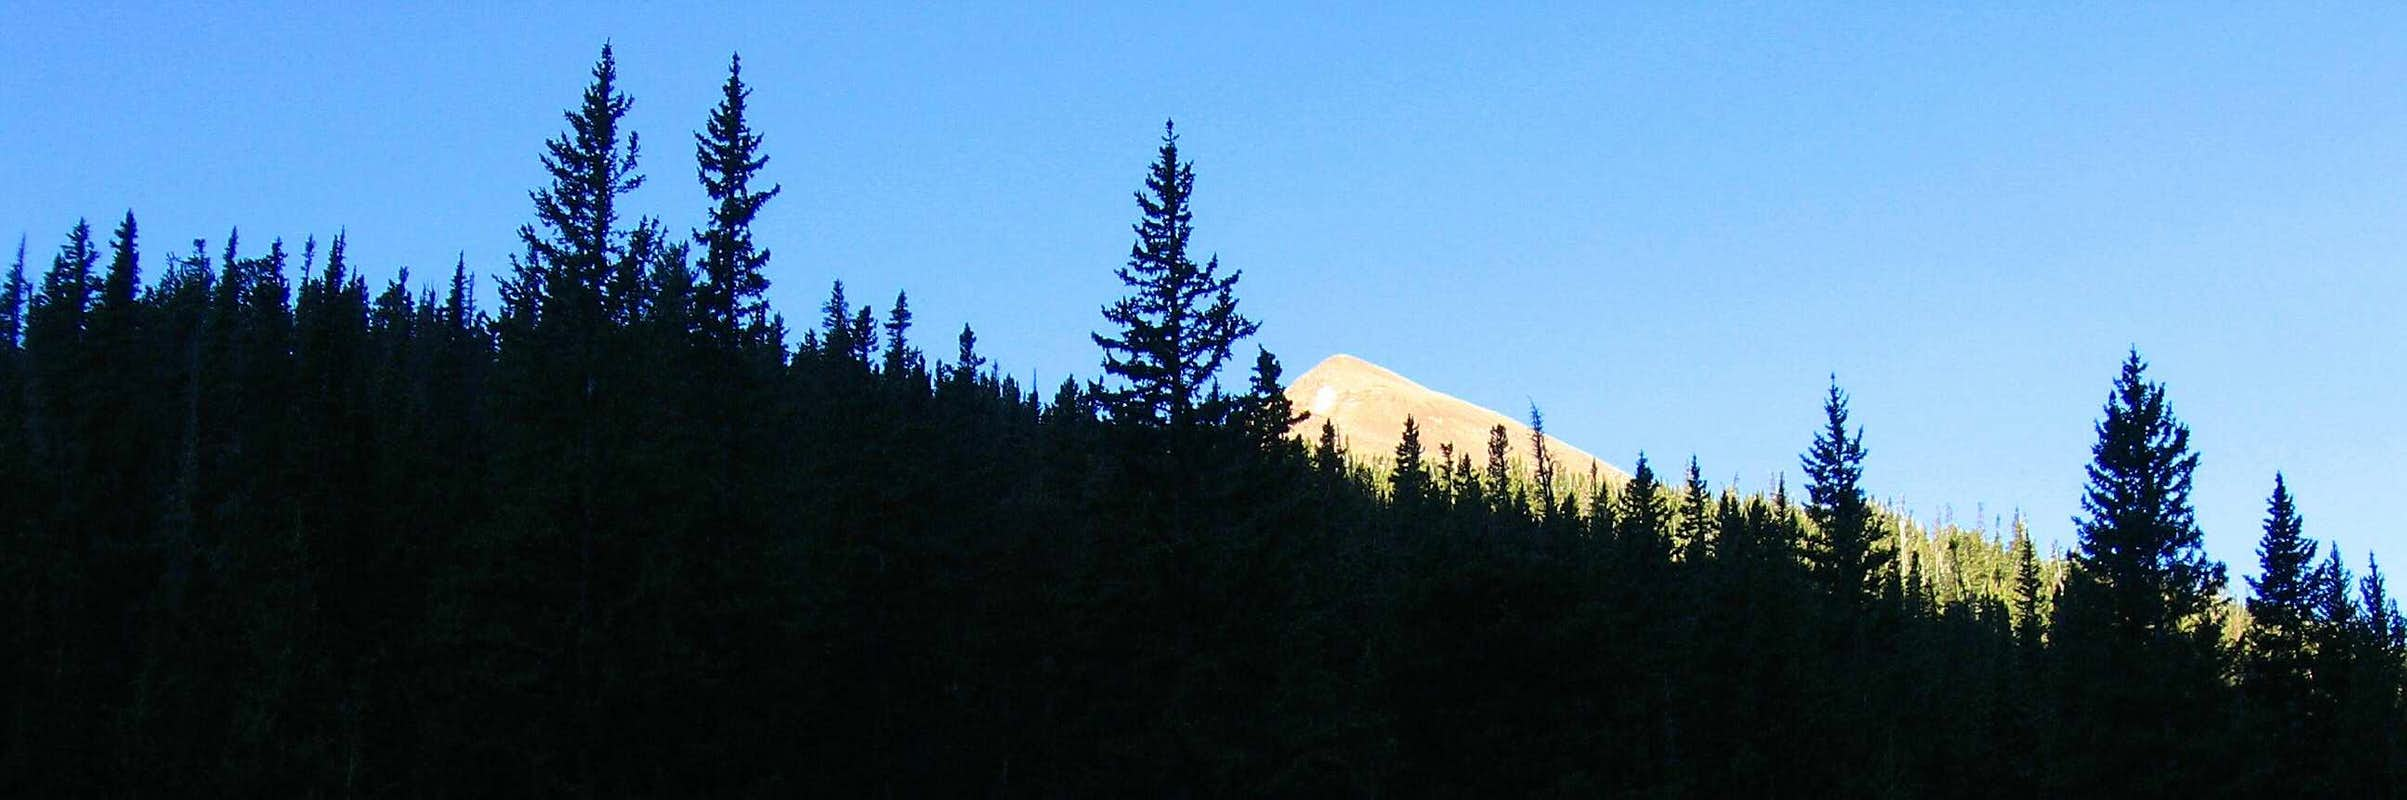 Baldy Mountain from Copper Park (Panorama Crop)